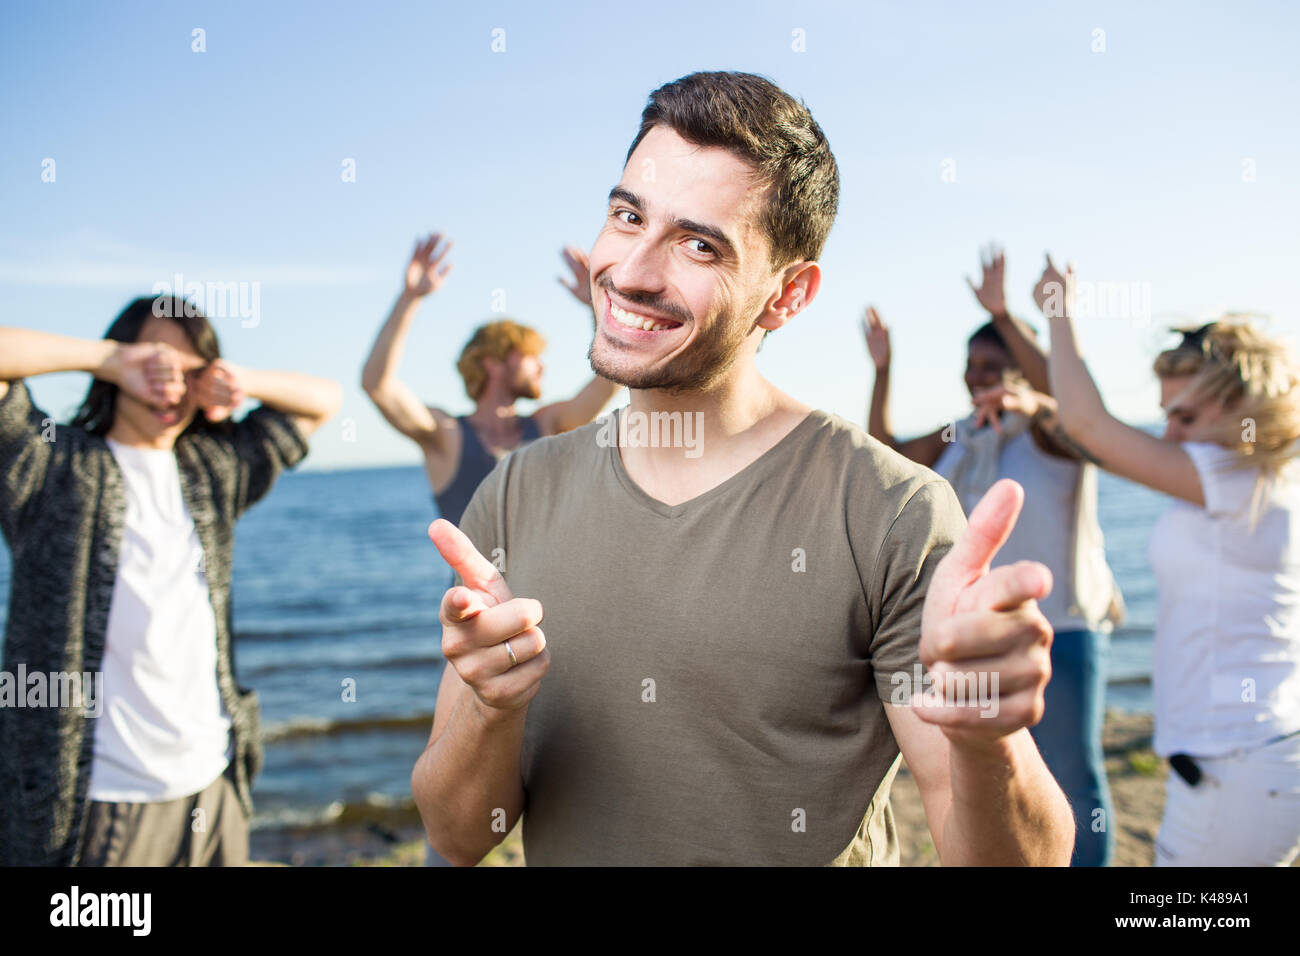 Party by seaside - Stock Image